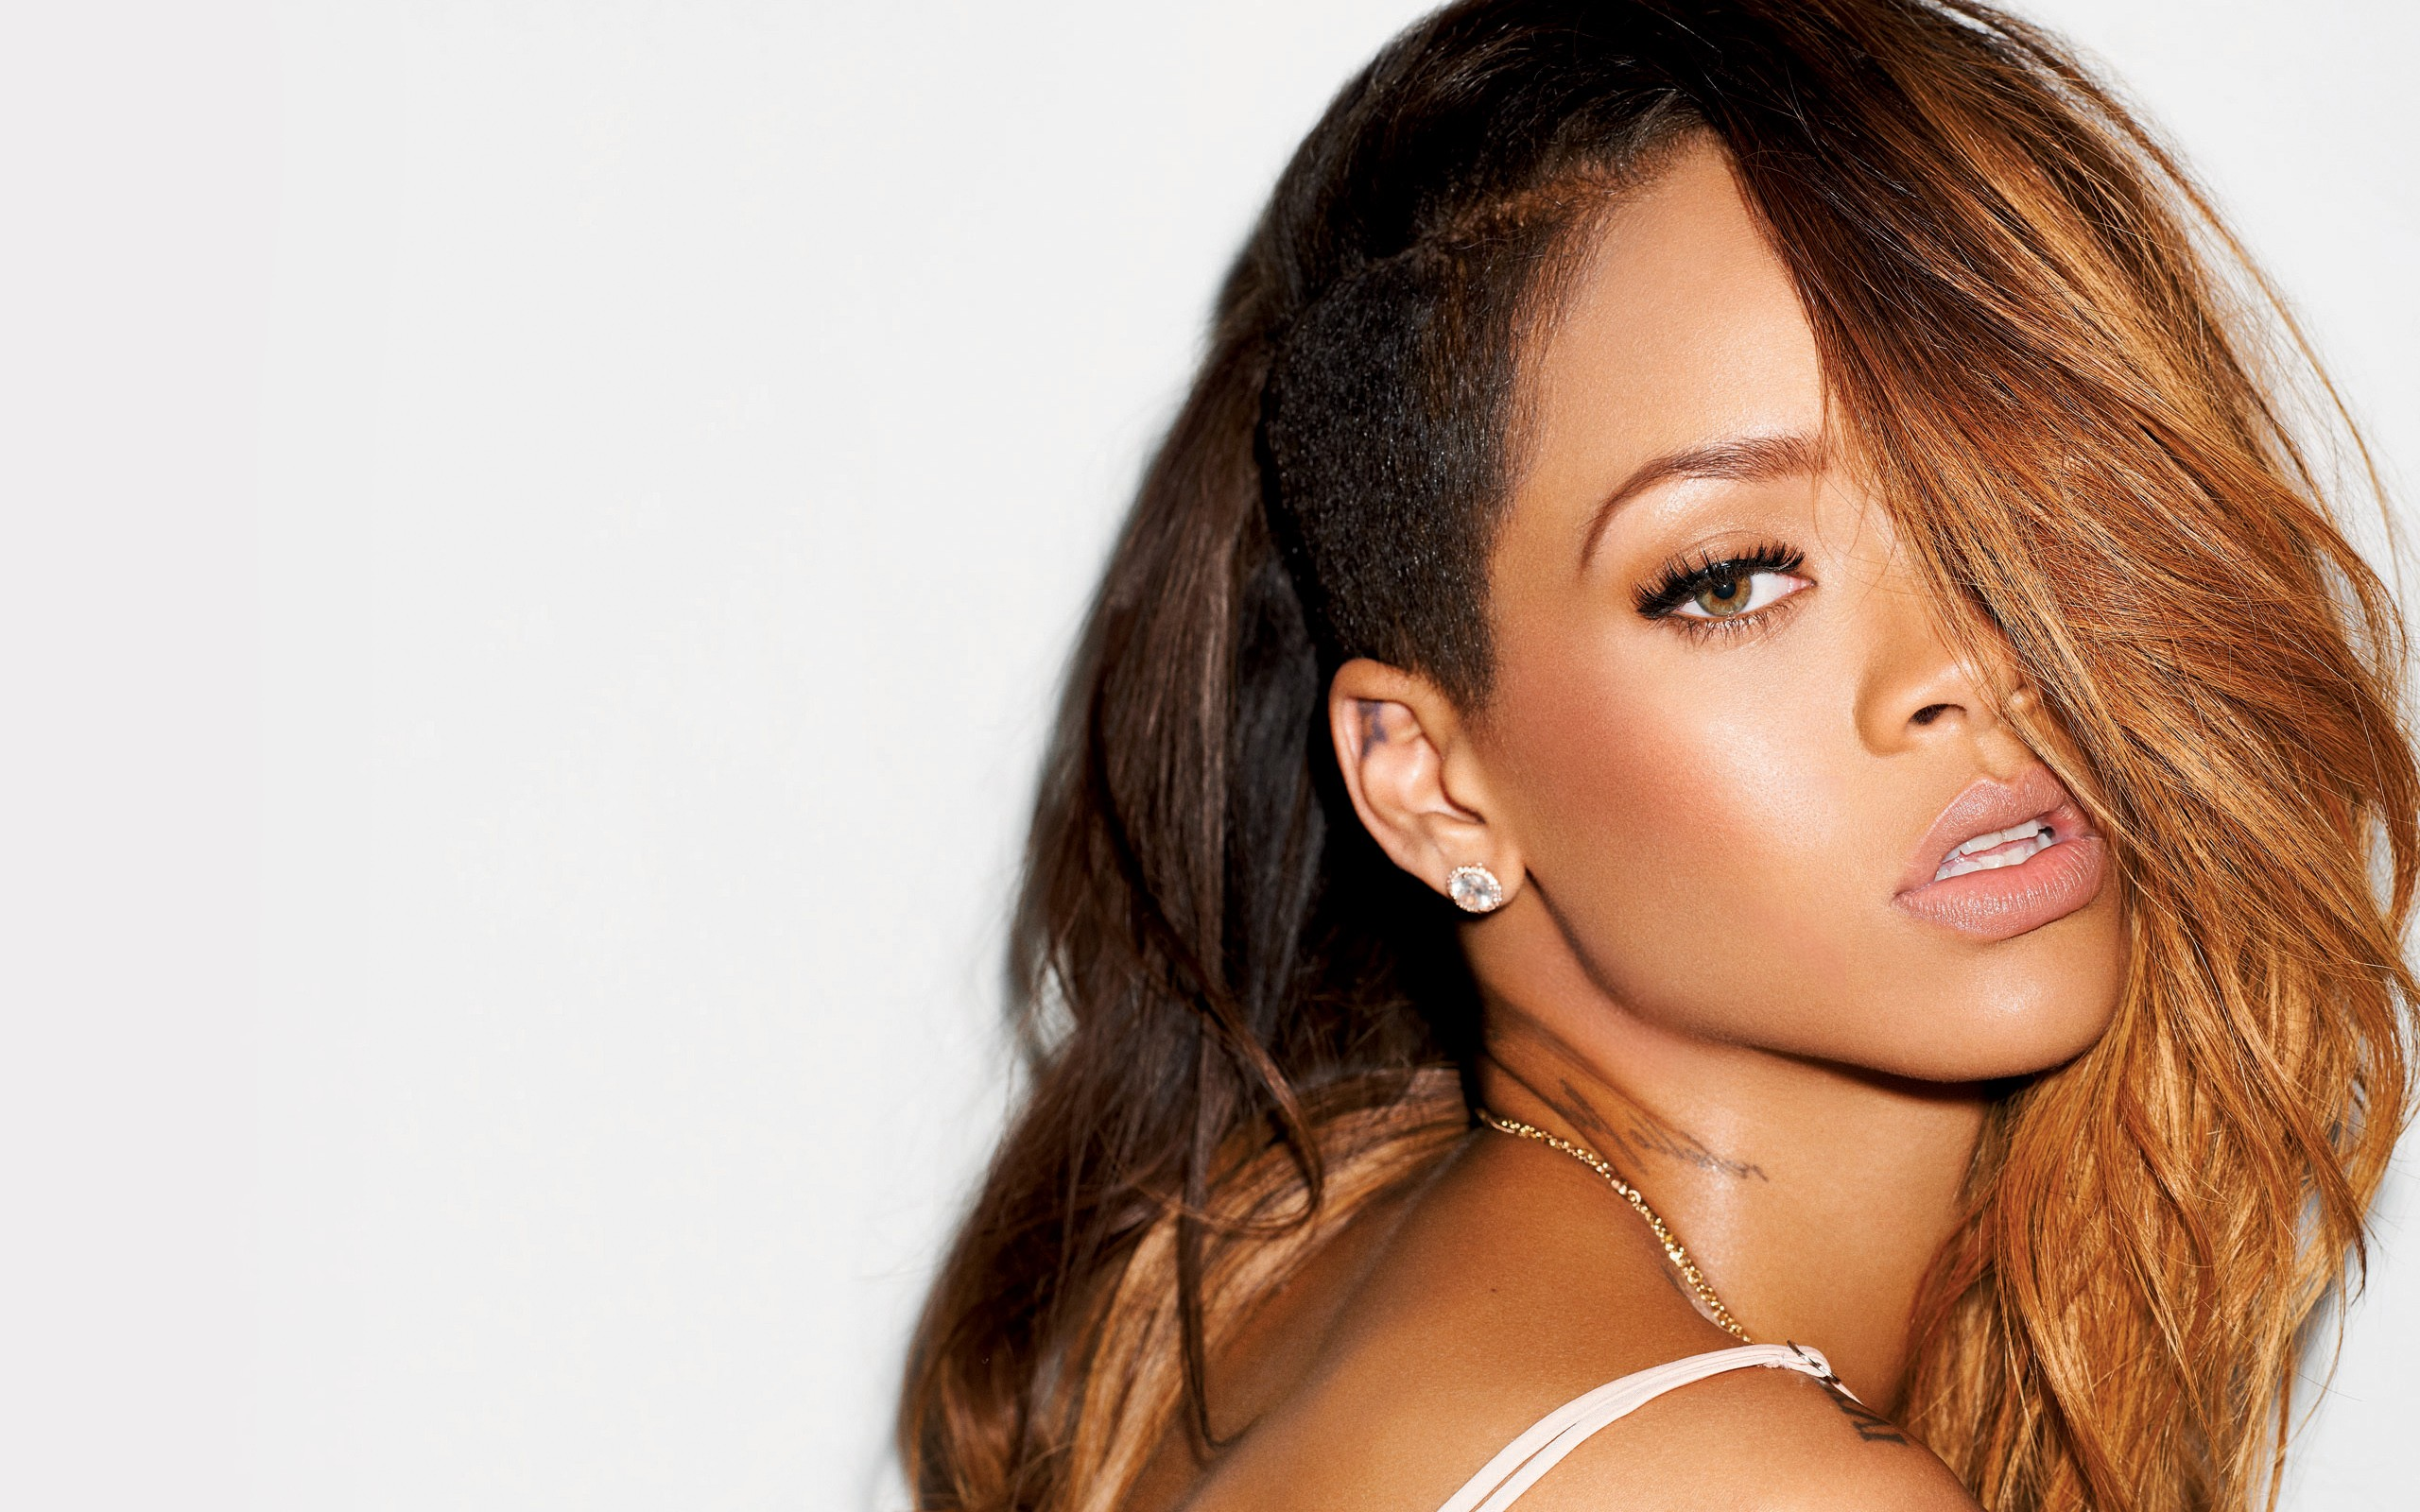 rihanna wallpaper ·① download free awesome hd wallpapers of rihanna